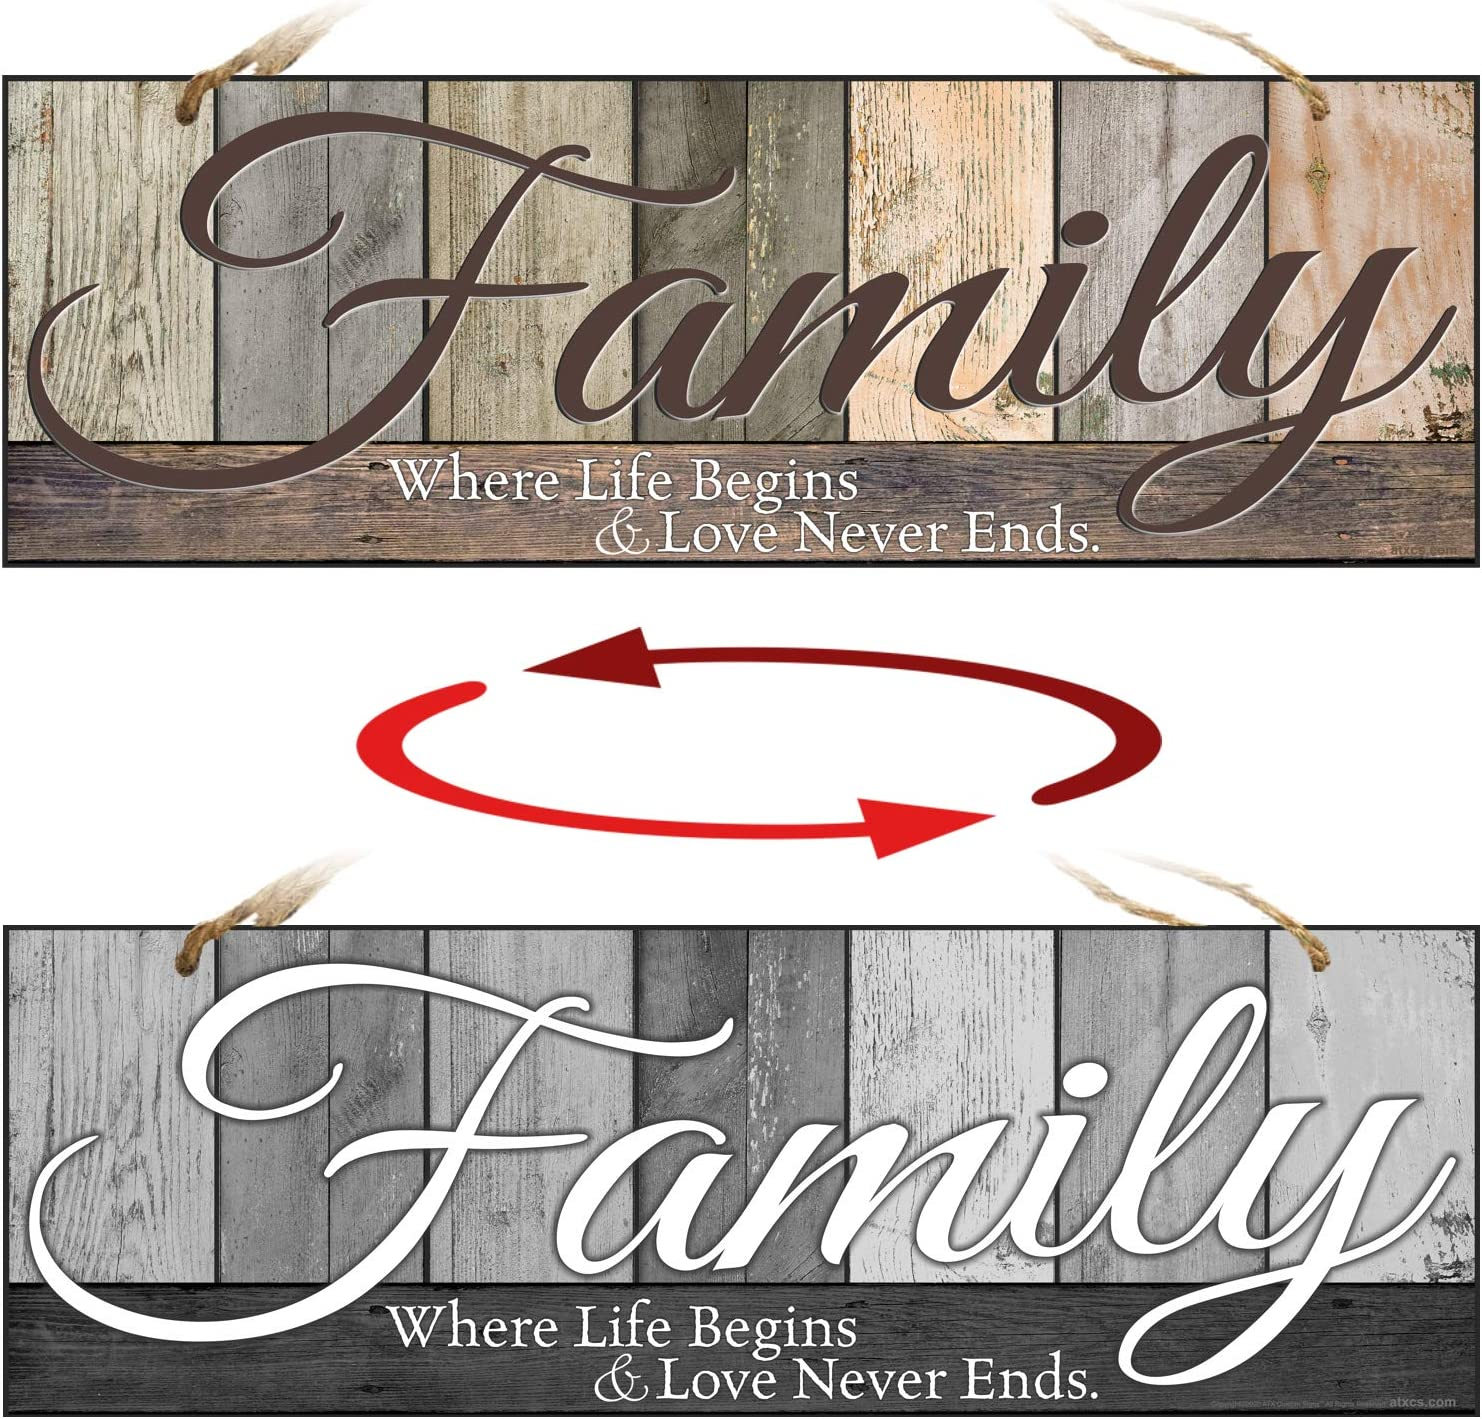 ATX CUSTOM SIGNS - Double Sided Family Sign for Home Decor - Family Where Life Begins and Love Never Ends. Colors and Light and Dark Grays